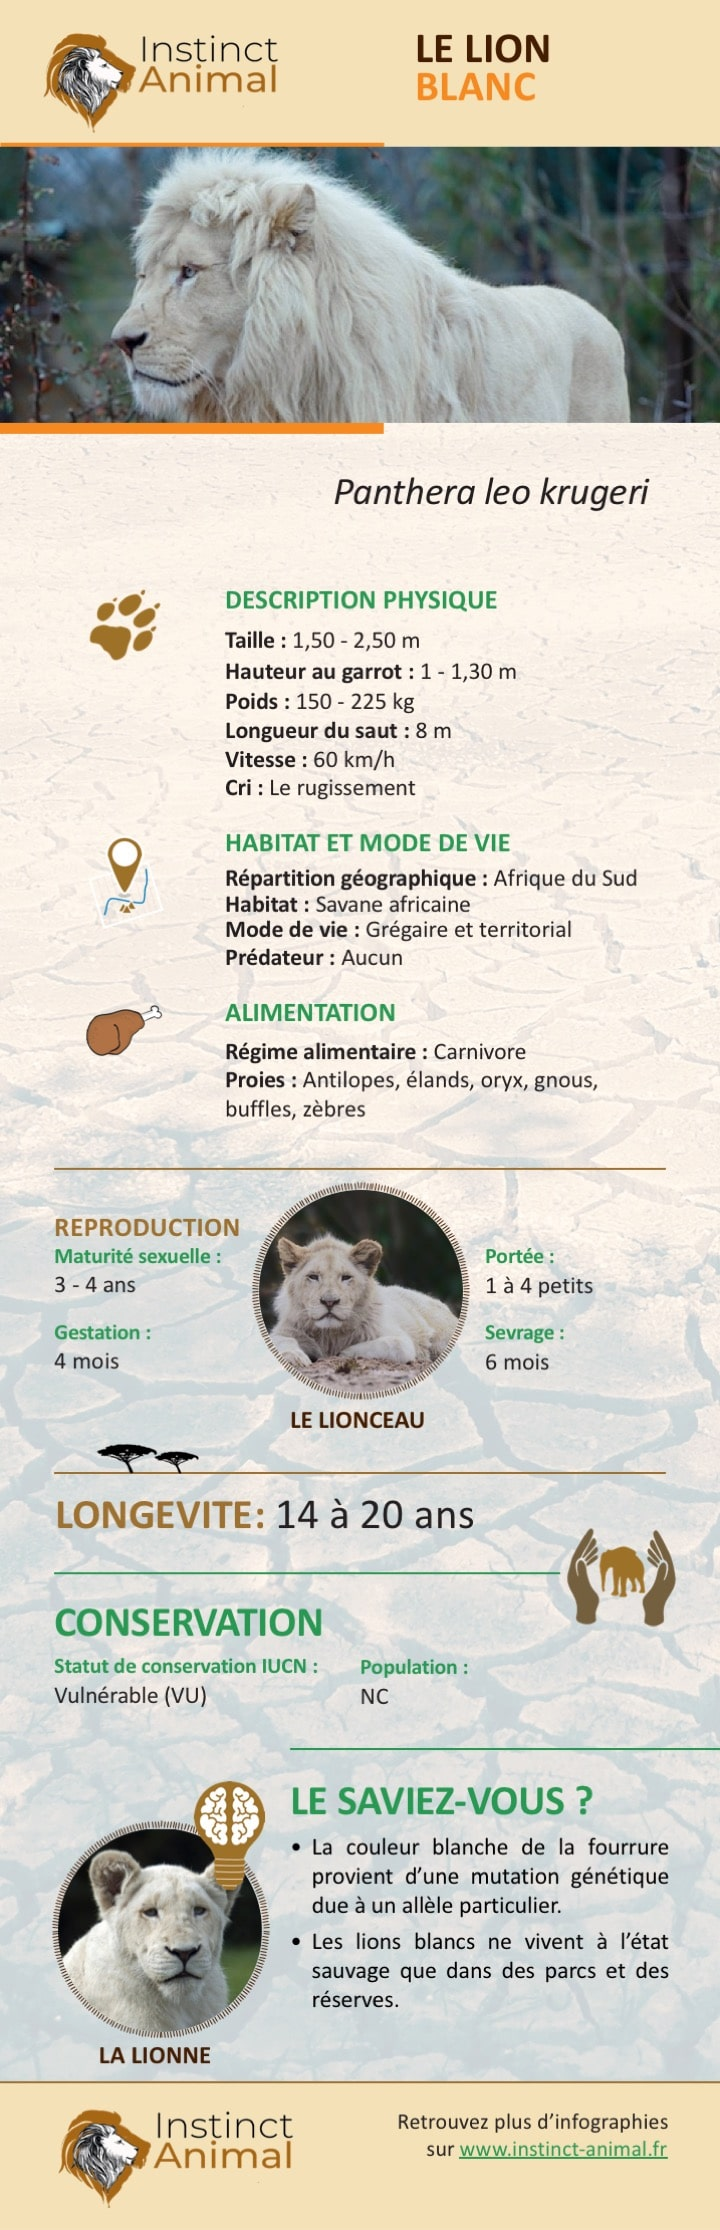 Le lion blanc - Infographie - Instinct Animal